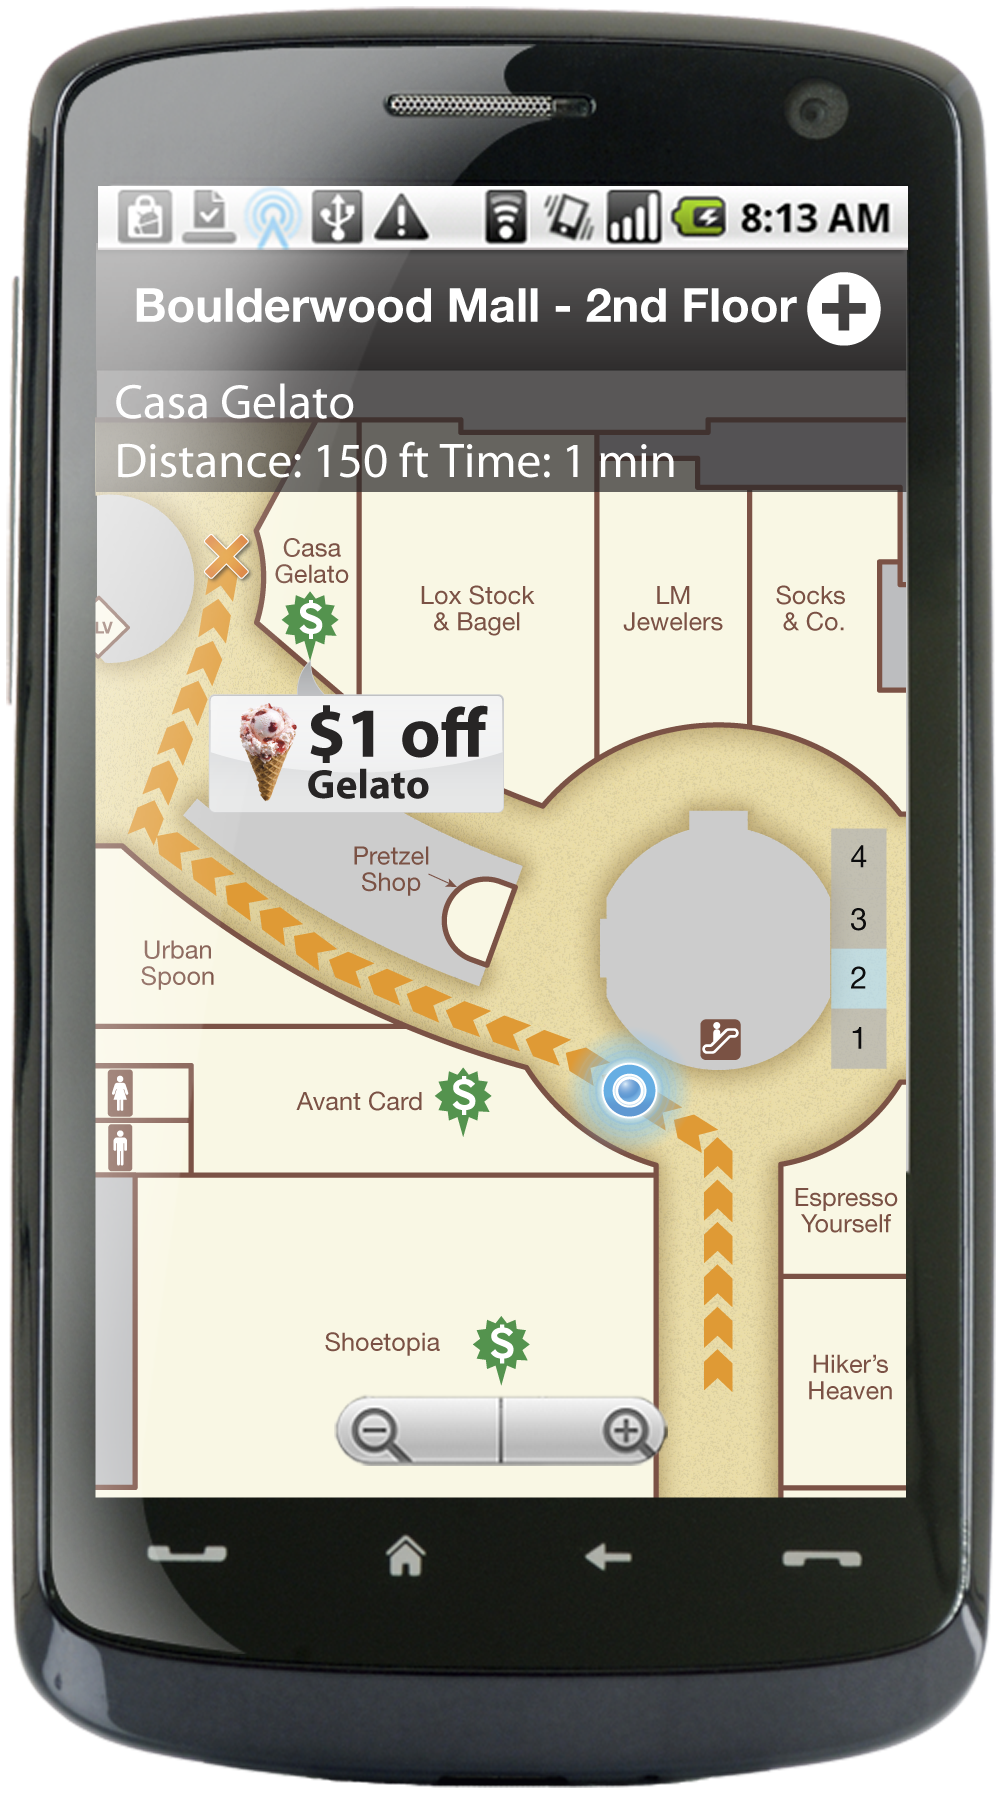 Wifarer mall map with coupon